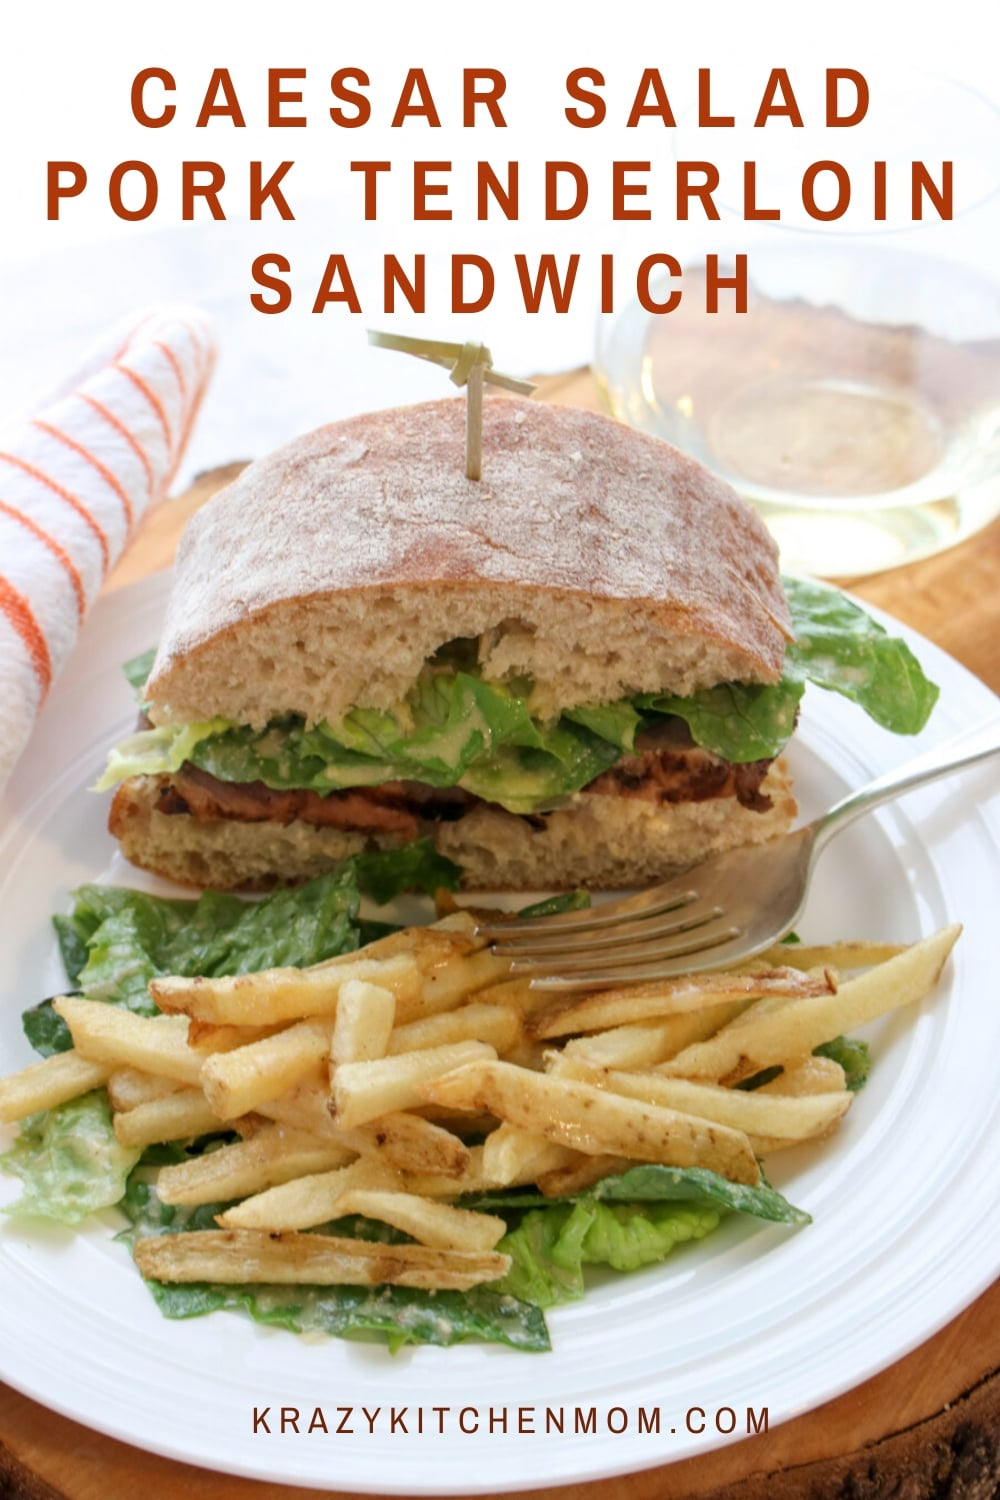 Caesar Salad Pork Tenderloin Sandwiches - Marinated, seared and roasted pork tenderloin on a ciabatta roll, topped with a classic caesar salad.  via @krazykitchenmom